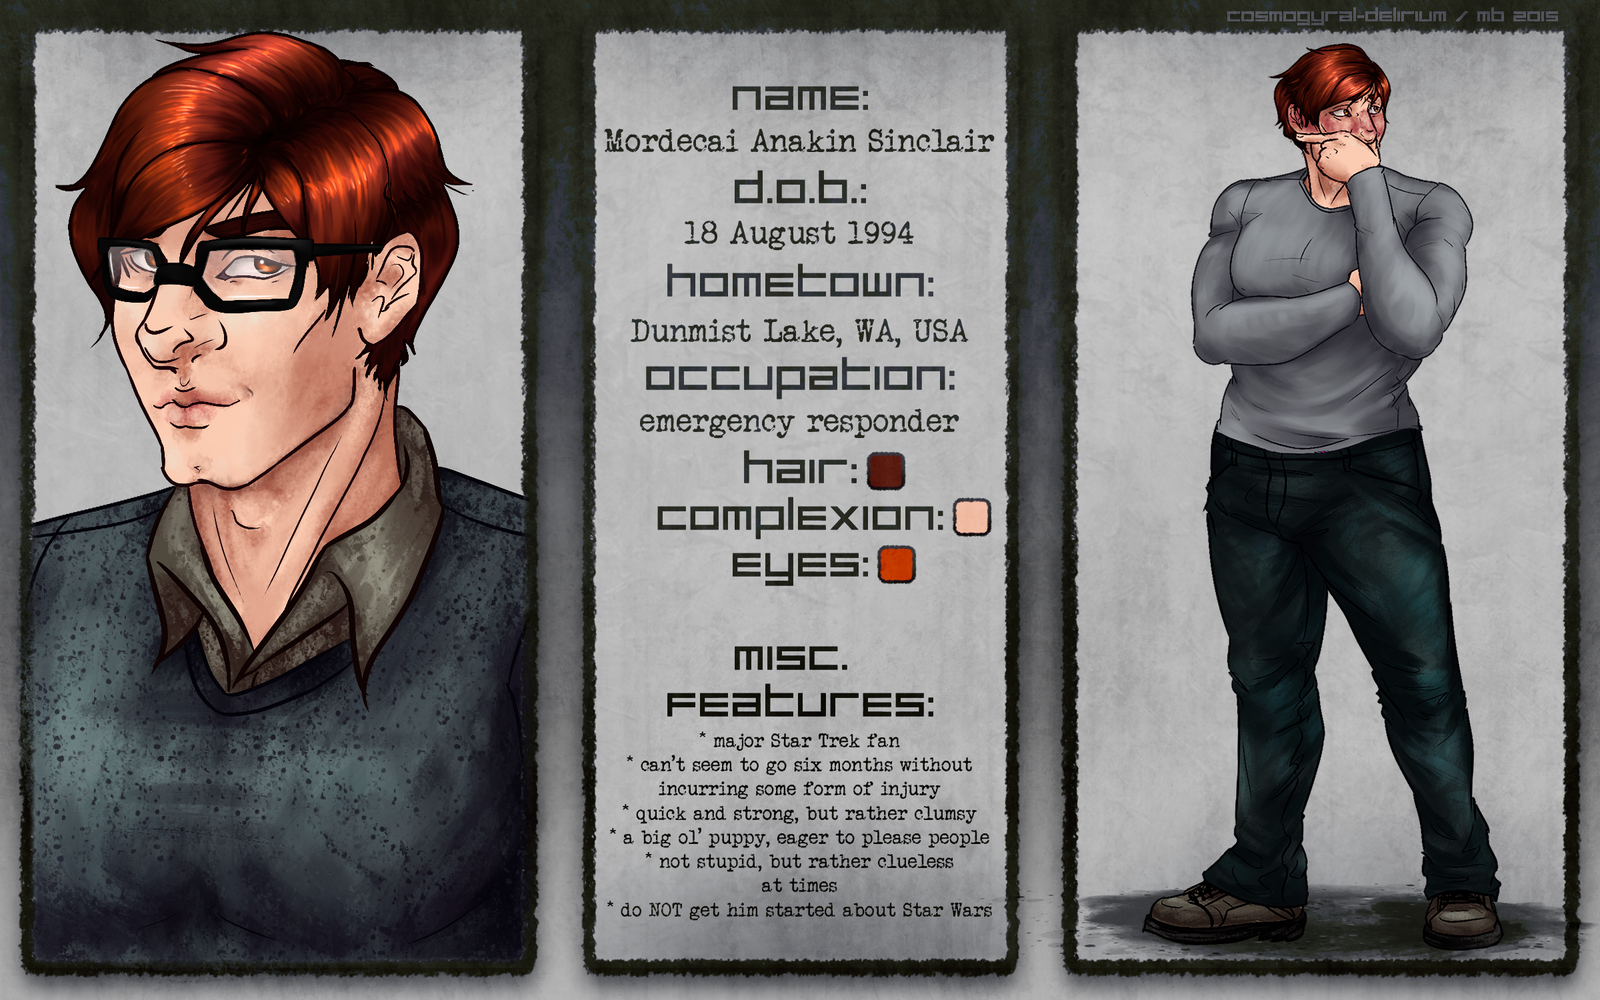 Character Sheet: Mordecai by cosmogyral-delirium